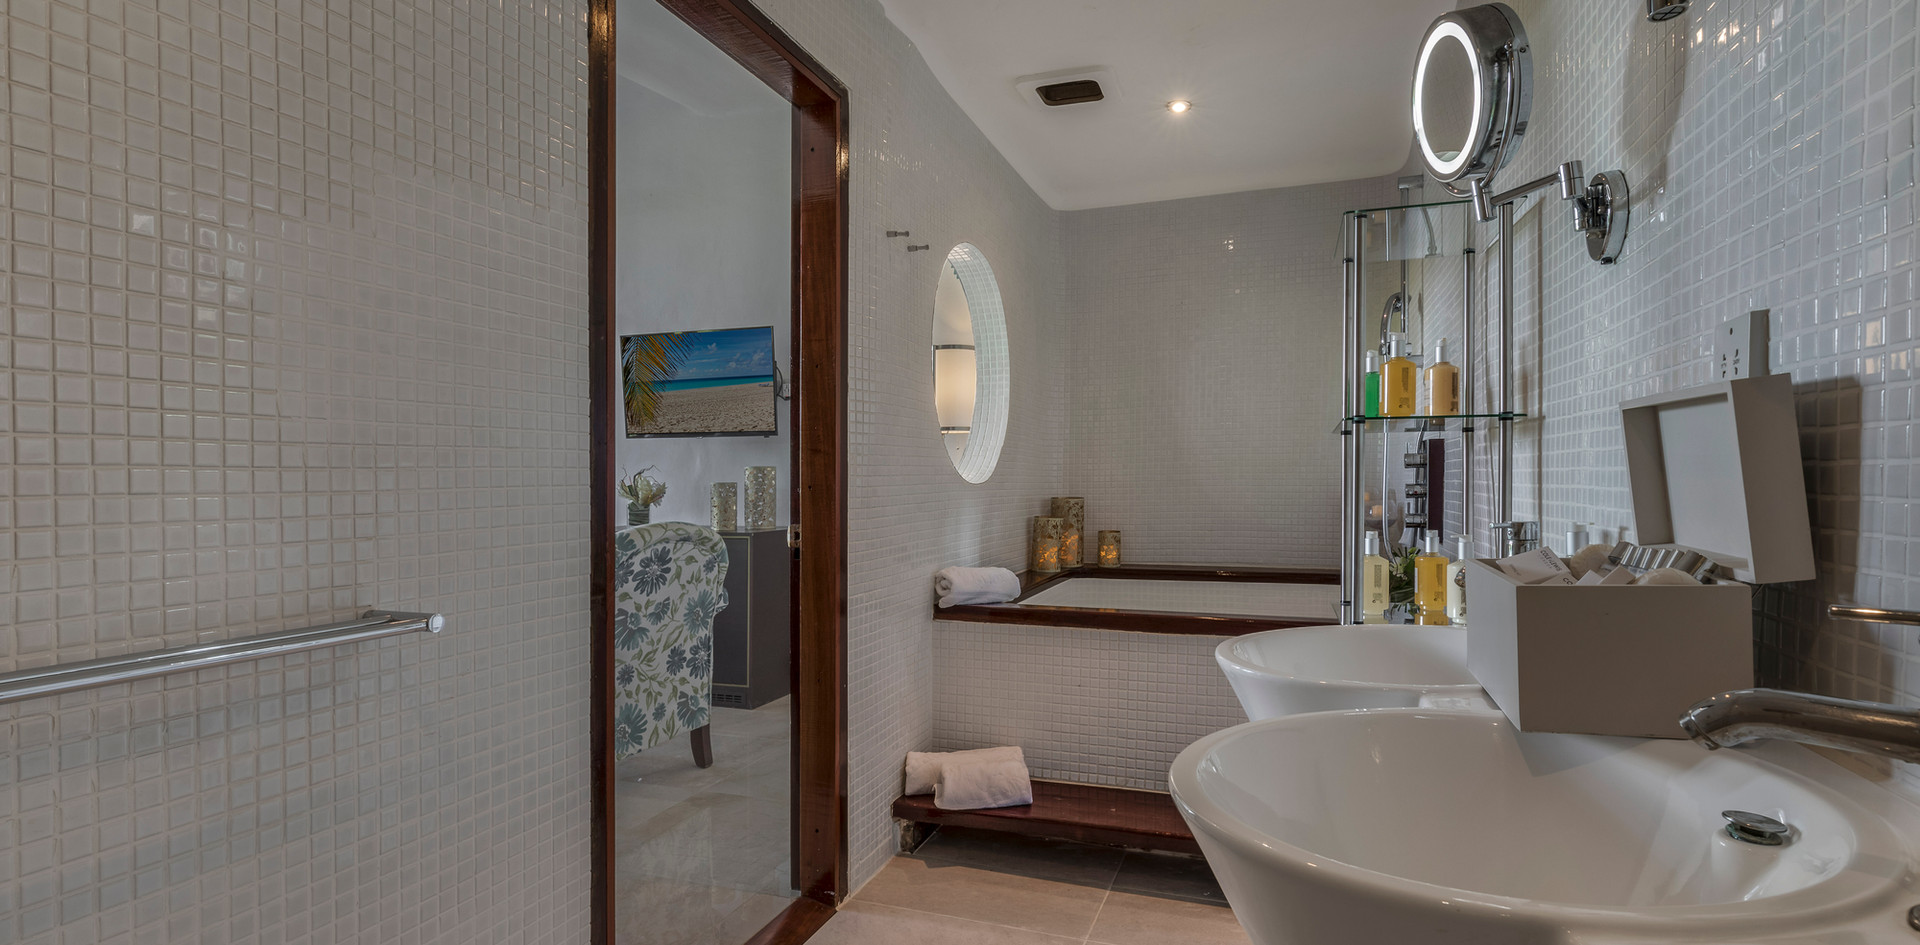 Main house bathroom with 2 person jacuzzi tub